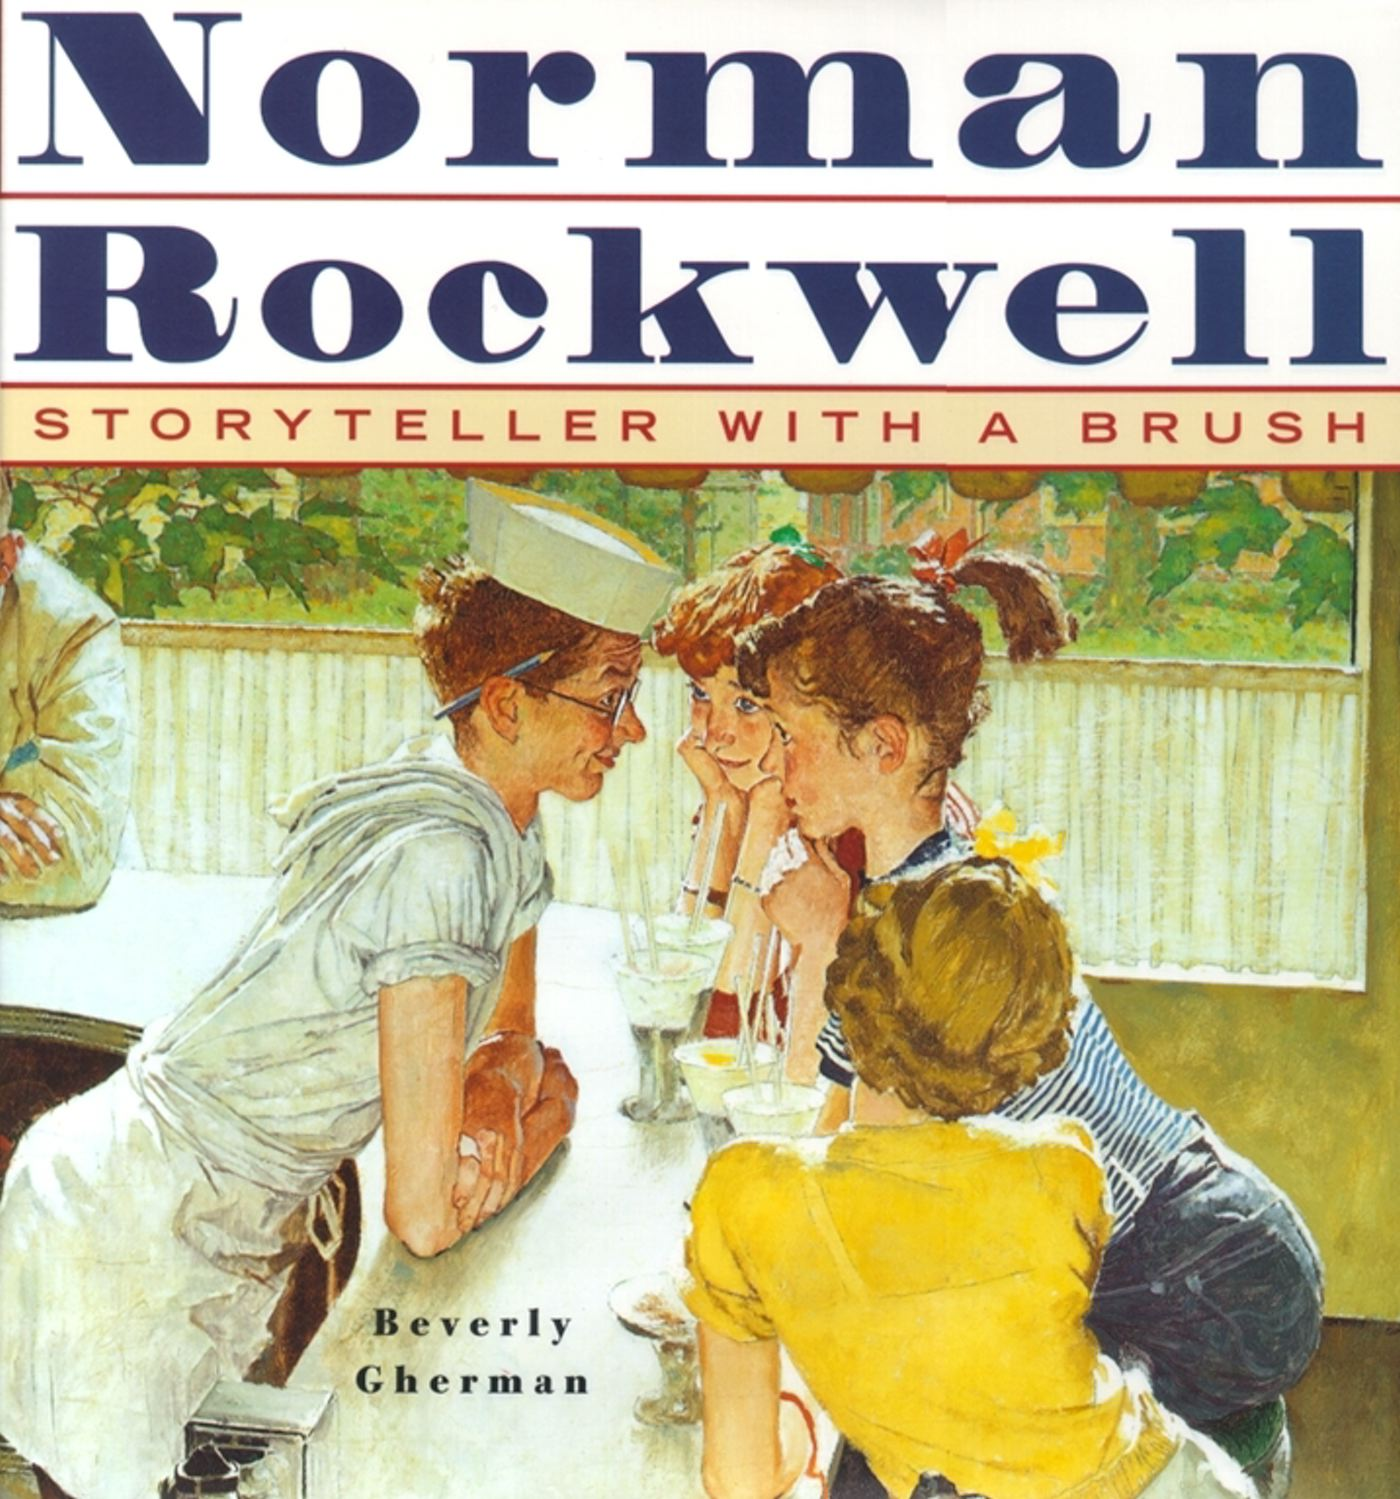 Norman Rockwell : Storyteller With A Brush